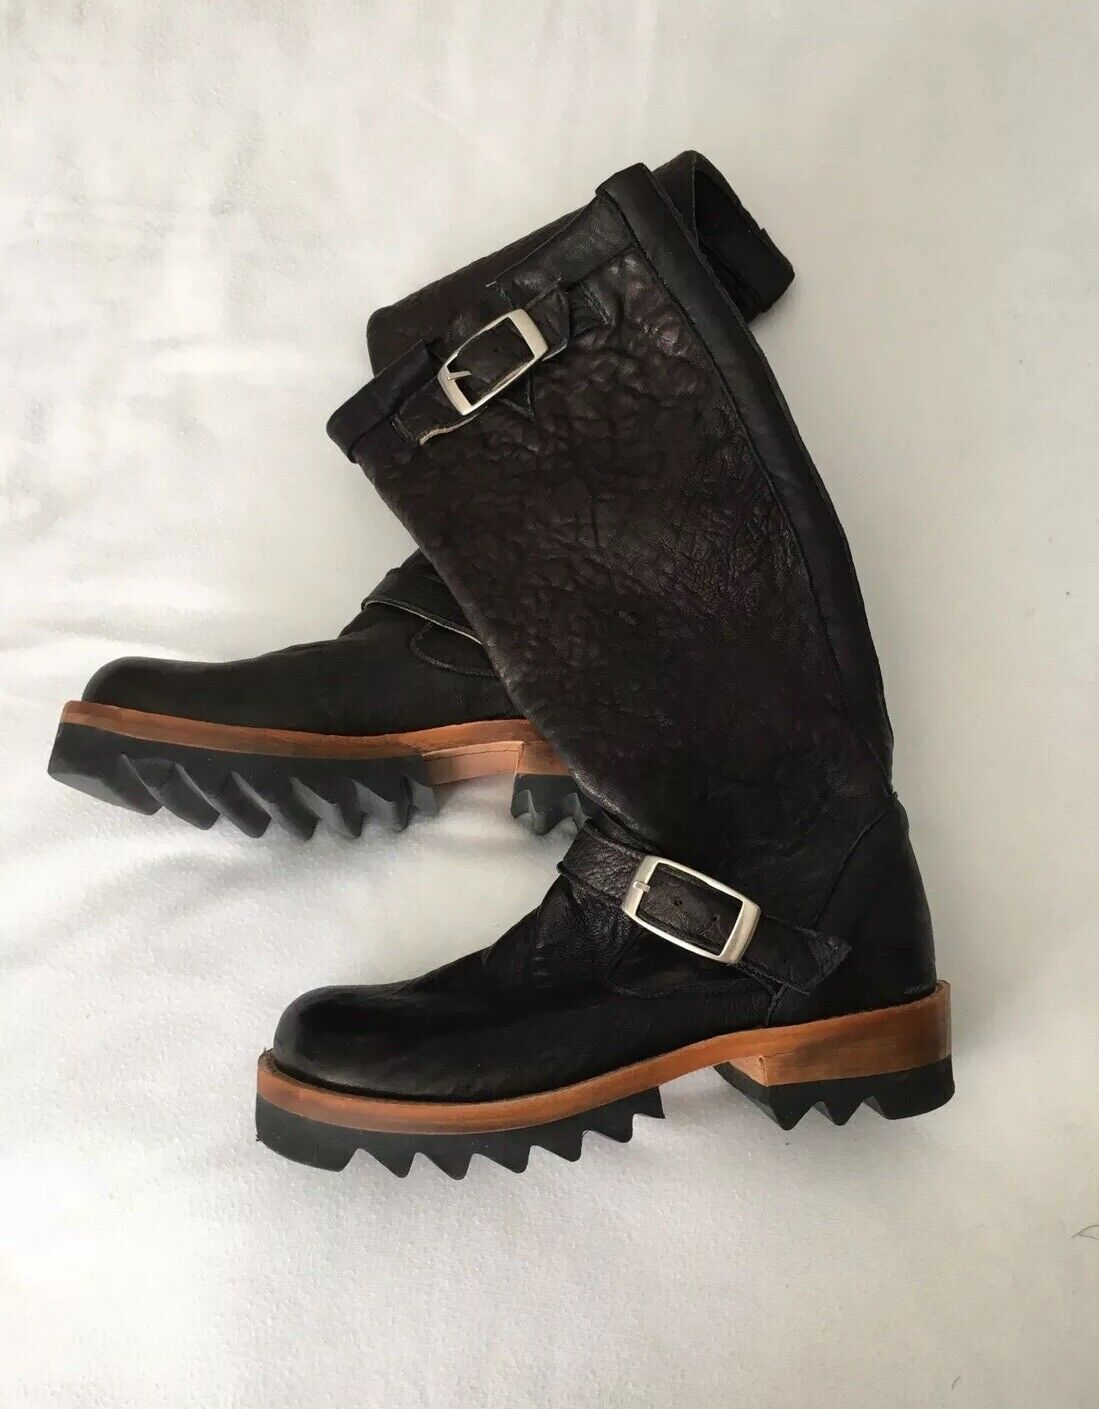 Jim Barnier Black Pull On Lug Sole Boots, Size 6, NEW